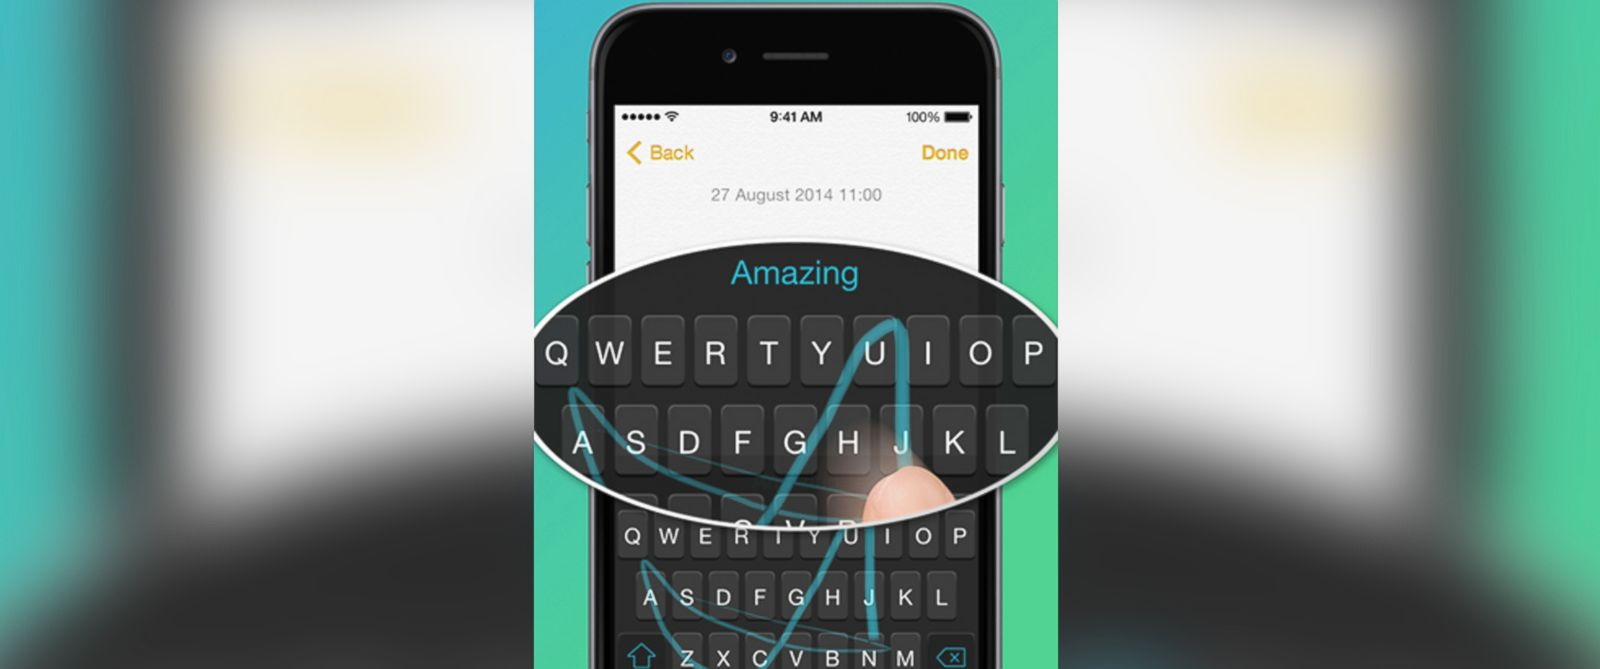 PHOTO: An image from the iPhone version of SwiftKey.